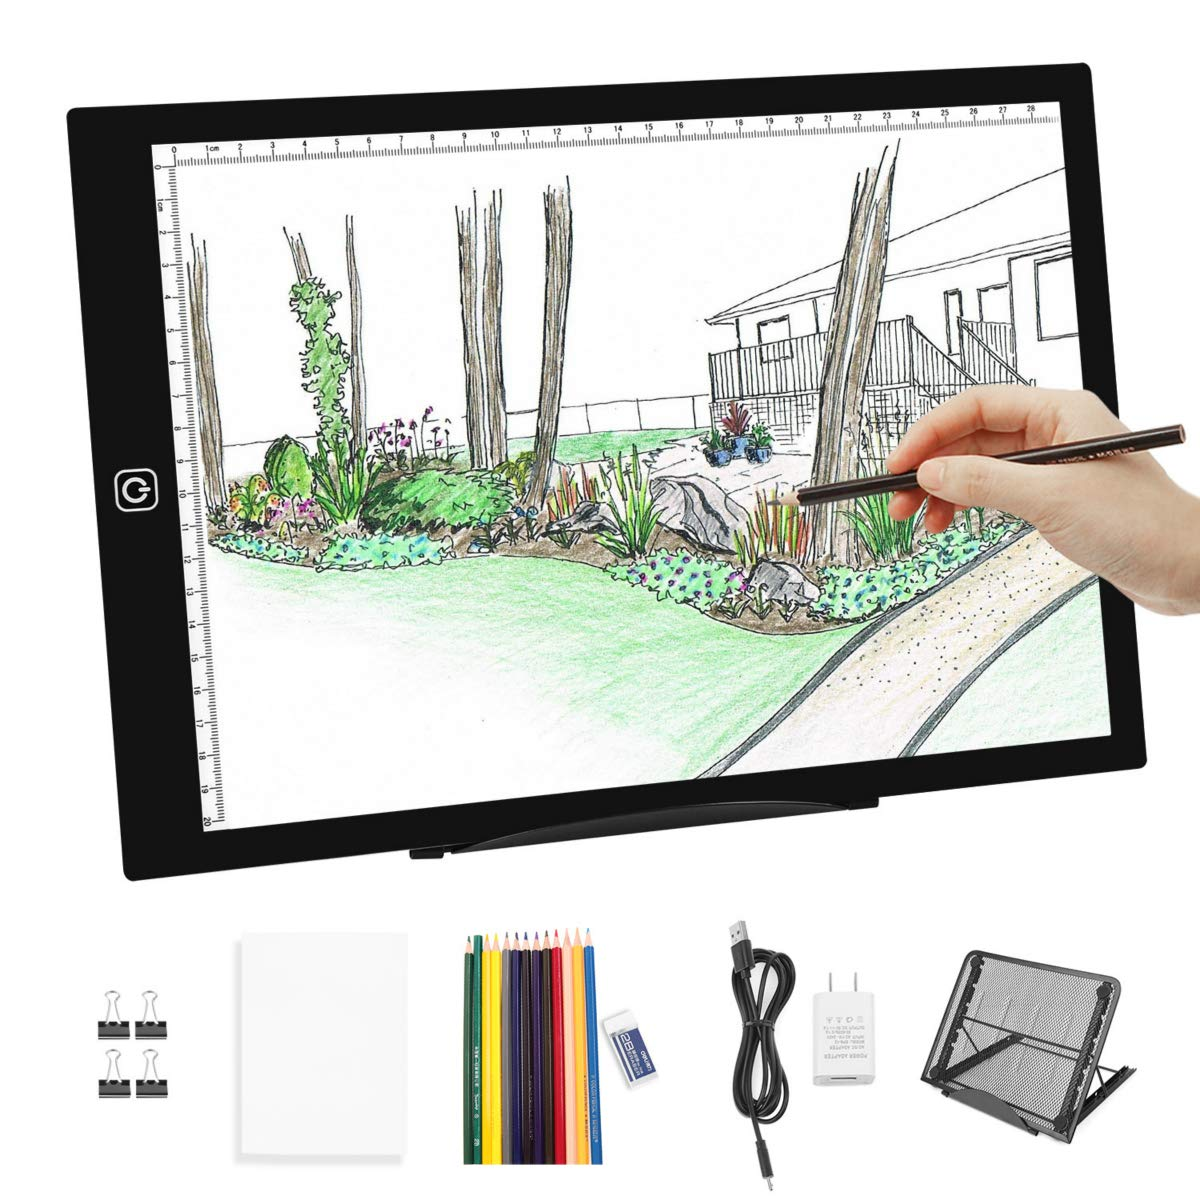 A4 LED Light Box Tracer-Dimmable Artcraft Tracing Light Box Light Board w Light Box Pad Stand,12pcs Colored Pencils and Adapter for Artists Drawing,Diamond Painting,Sketching,Animation